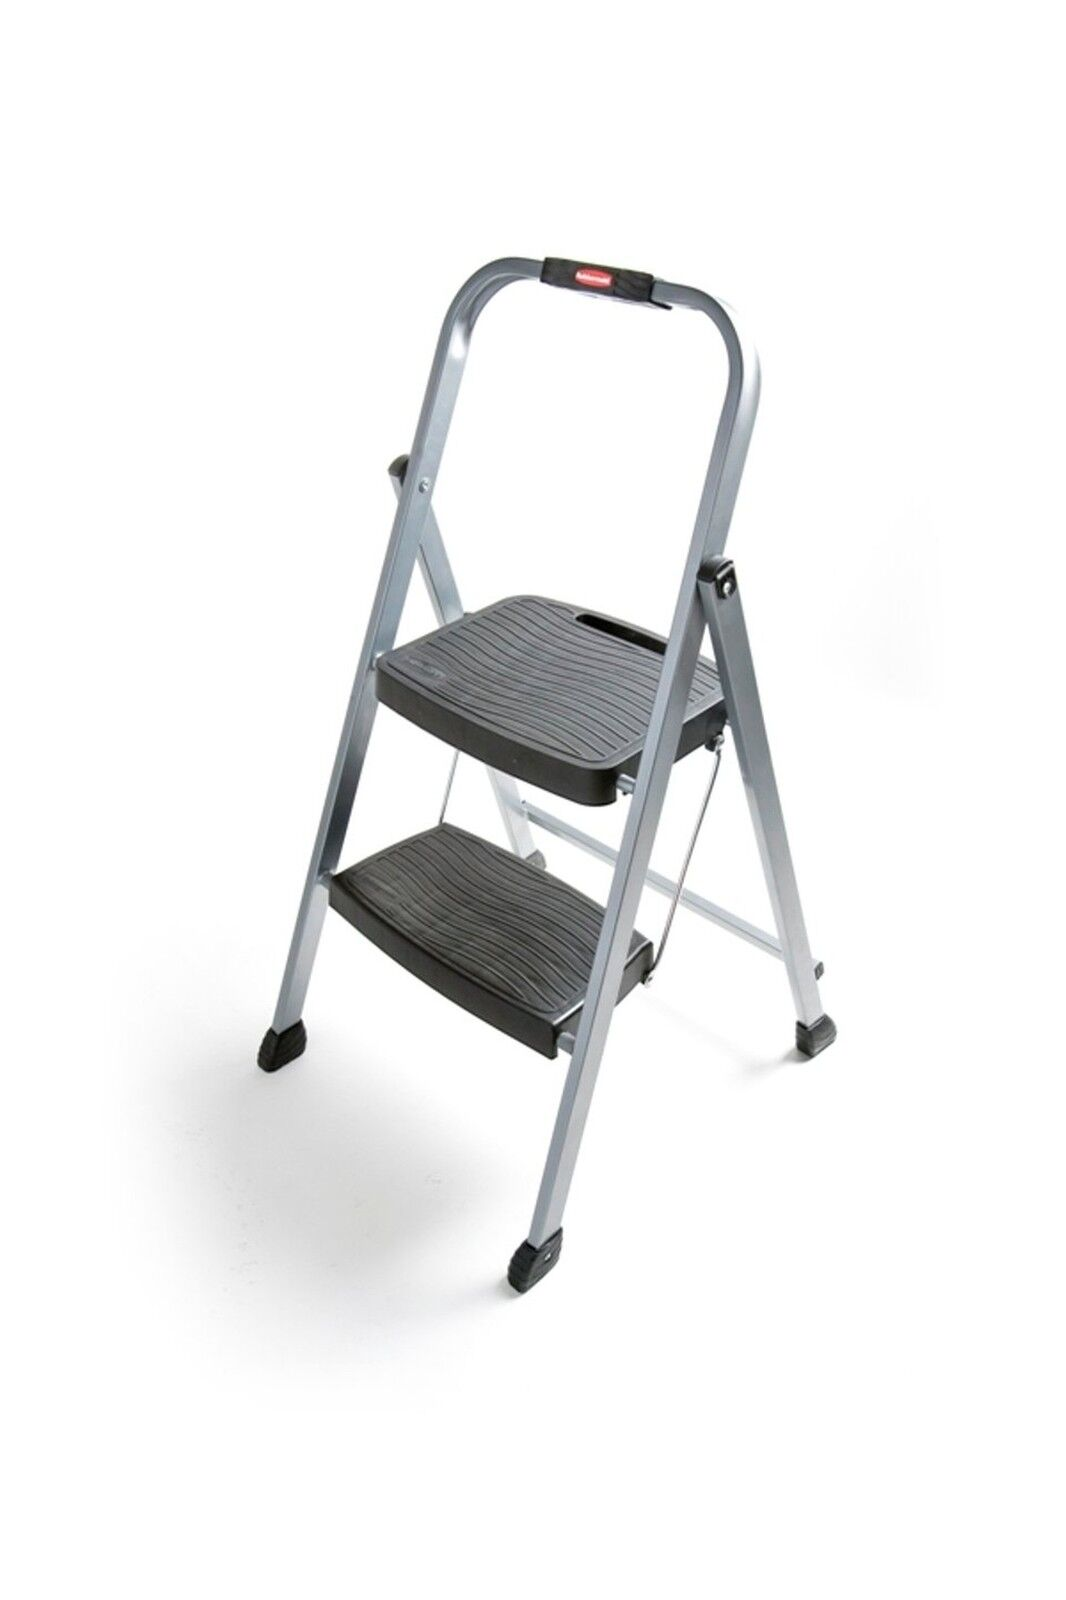 Rubbermaid RM-2W Folding 2-Step Steel Frame Stool with Hand Gri... Free Shipping